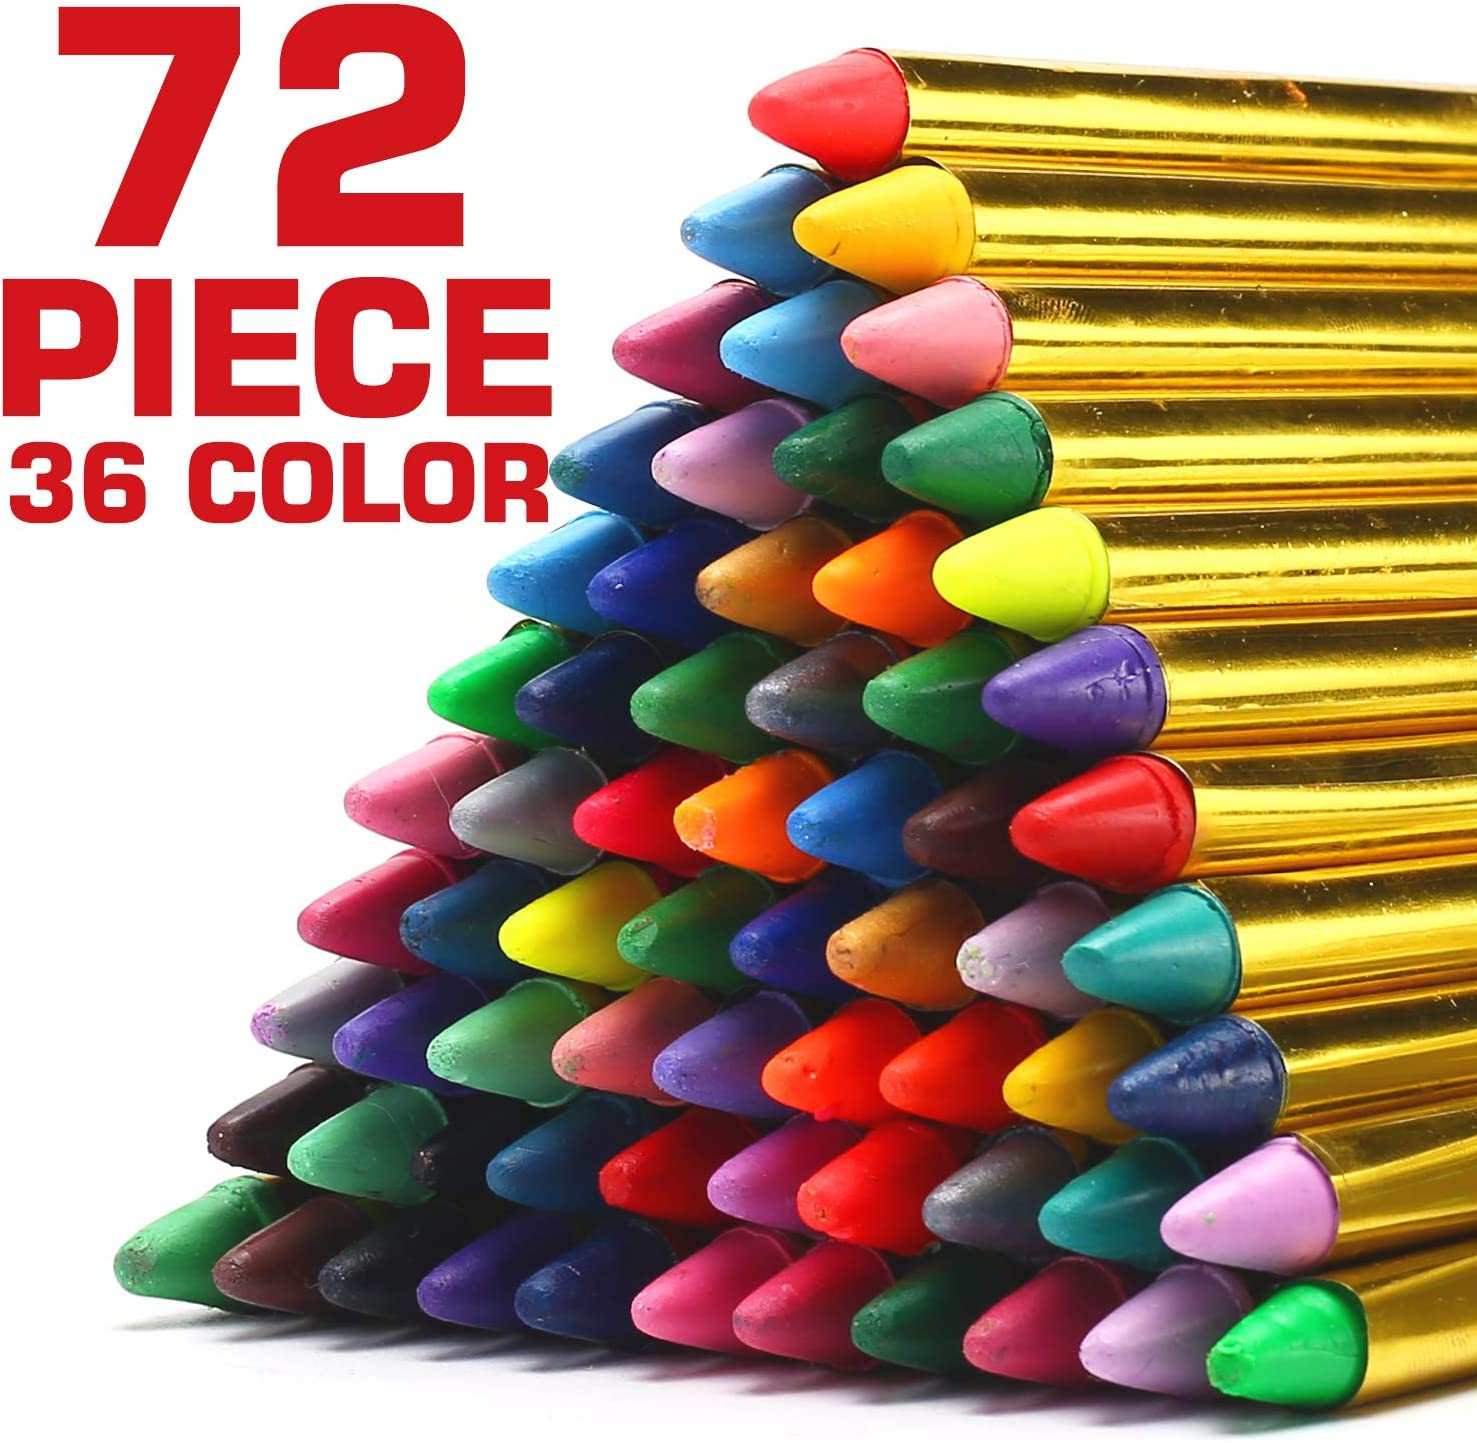 """72 Pack 36 Color Face and Body Paint Crayon 3"""", Safe Non-Toxic Painting Crayons Stick for Party Favors, Halloween, Birthday, Easter, School Carnival Makeup Marker Gift Set for Child Kid Boy and Girl"""